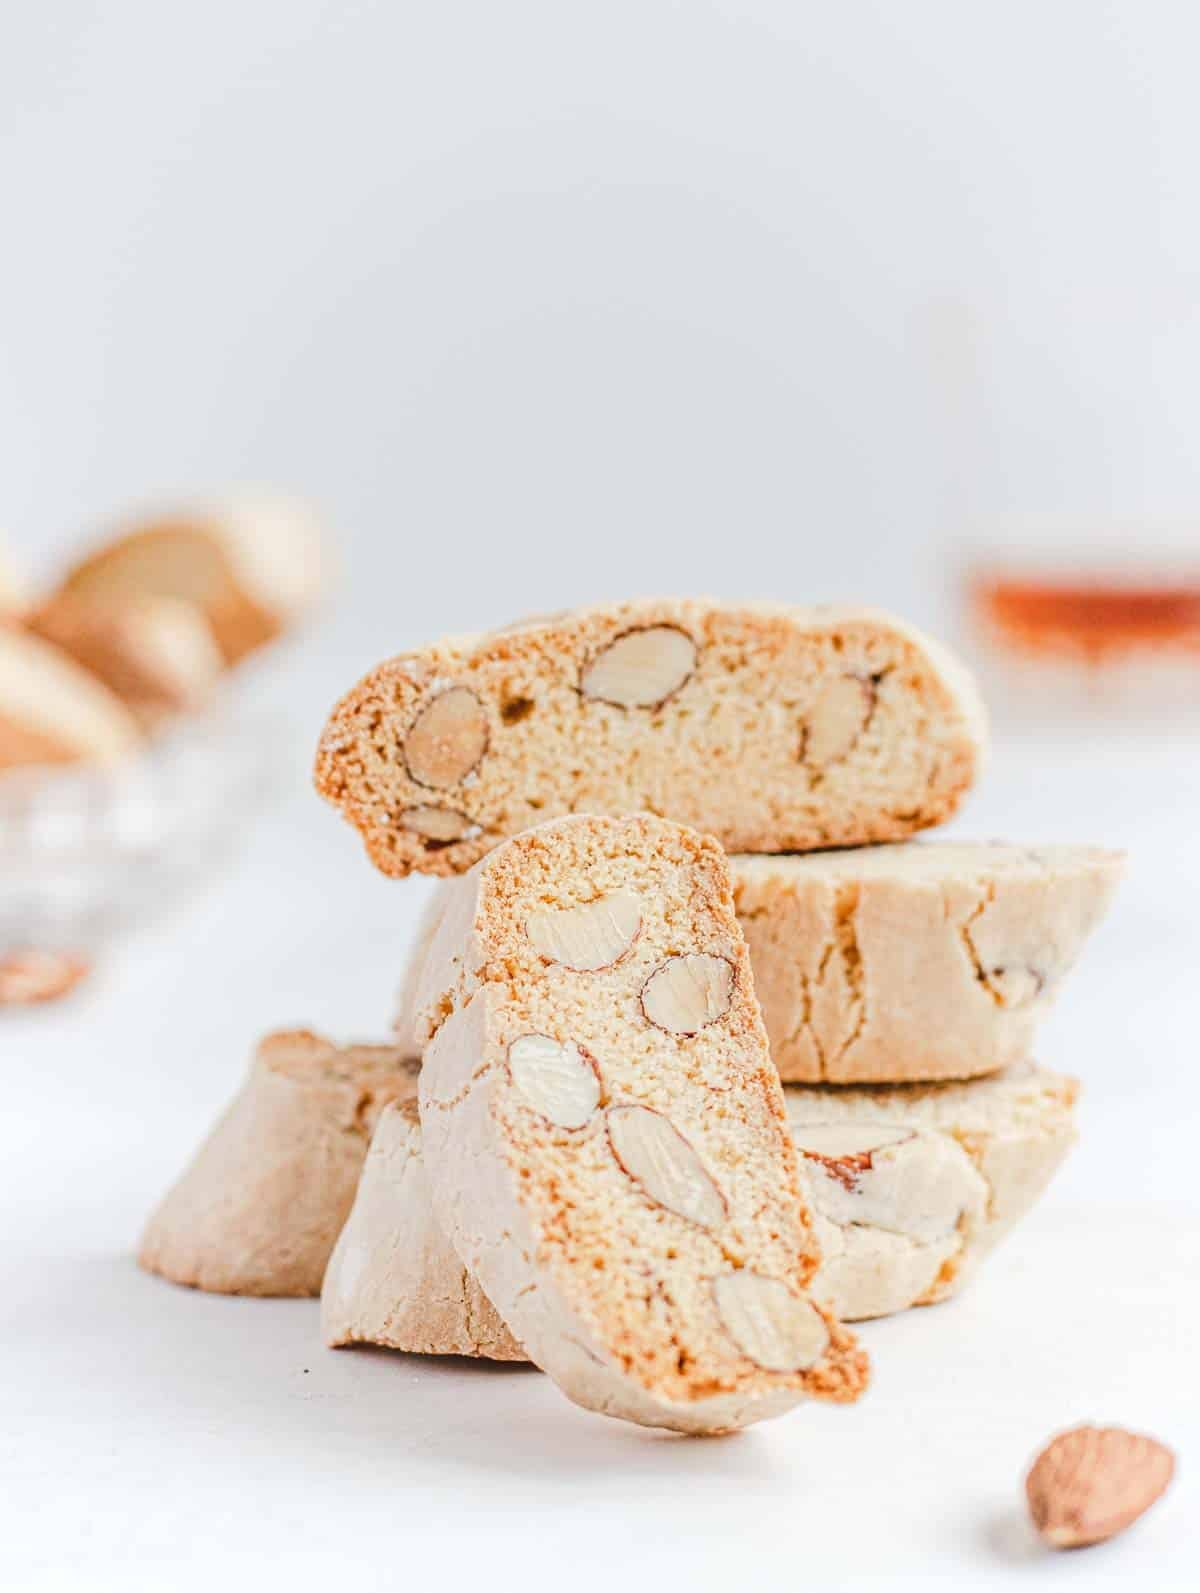 biscotti with almond on a plate